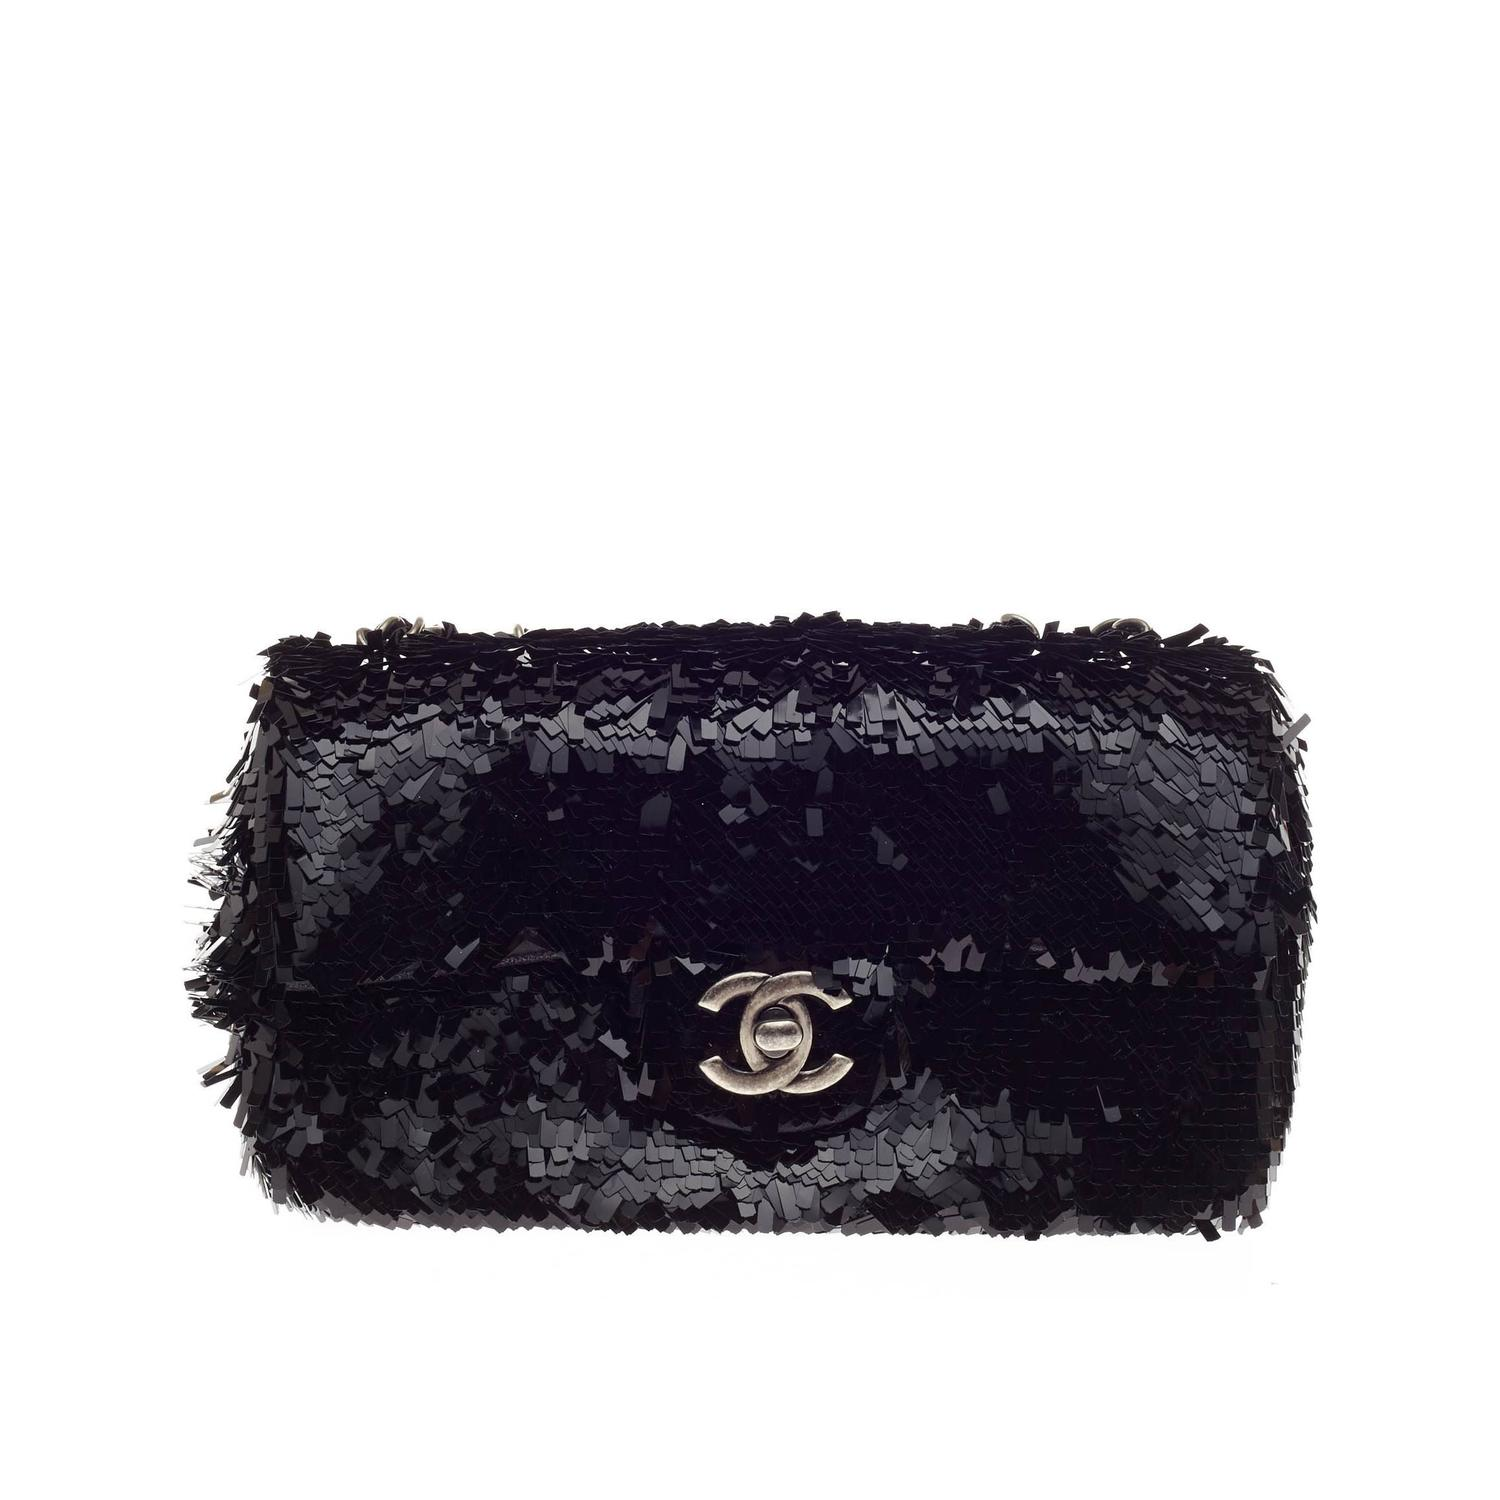 Chanel Flap Bag Embroidered Sequin Small at 1stdibs